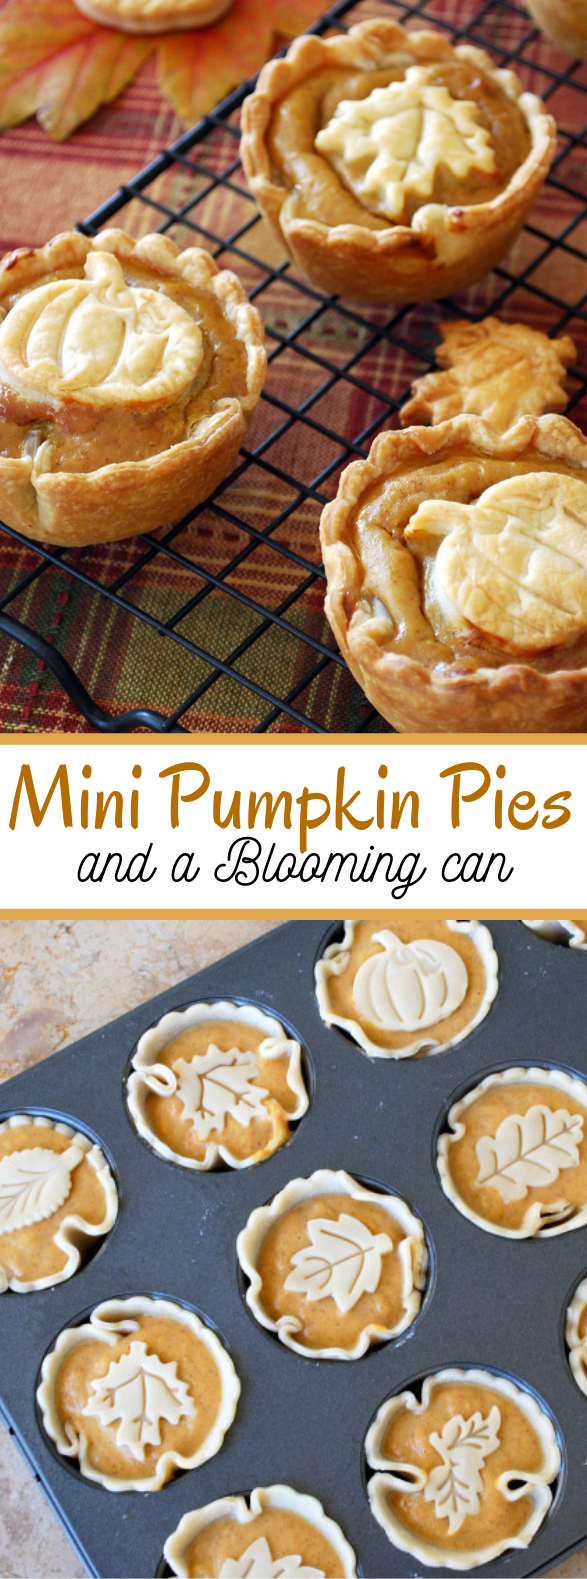 Mini Pumpkin Pies and a Blooming Can #desserts #cookies